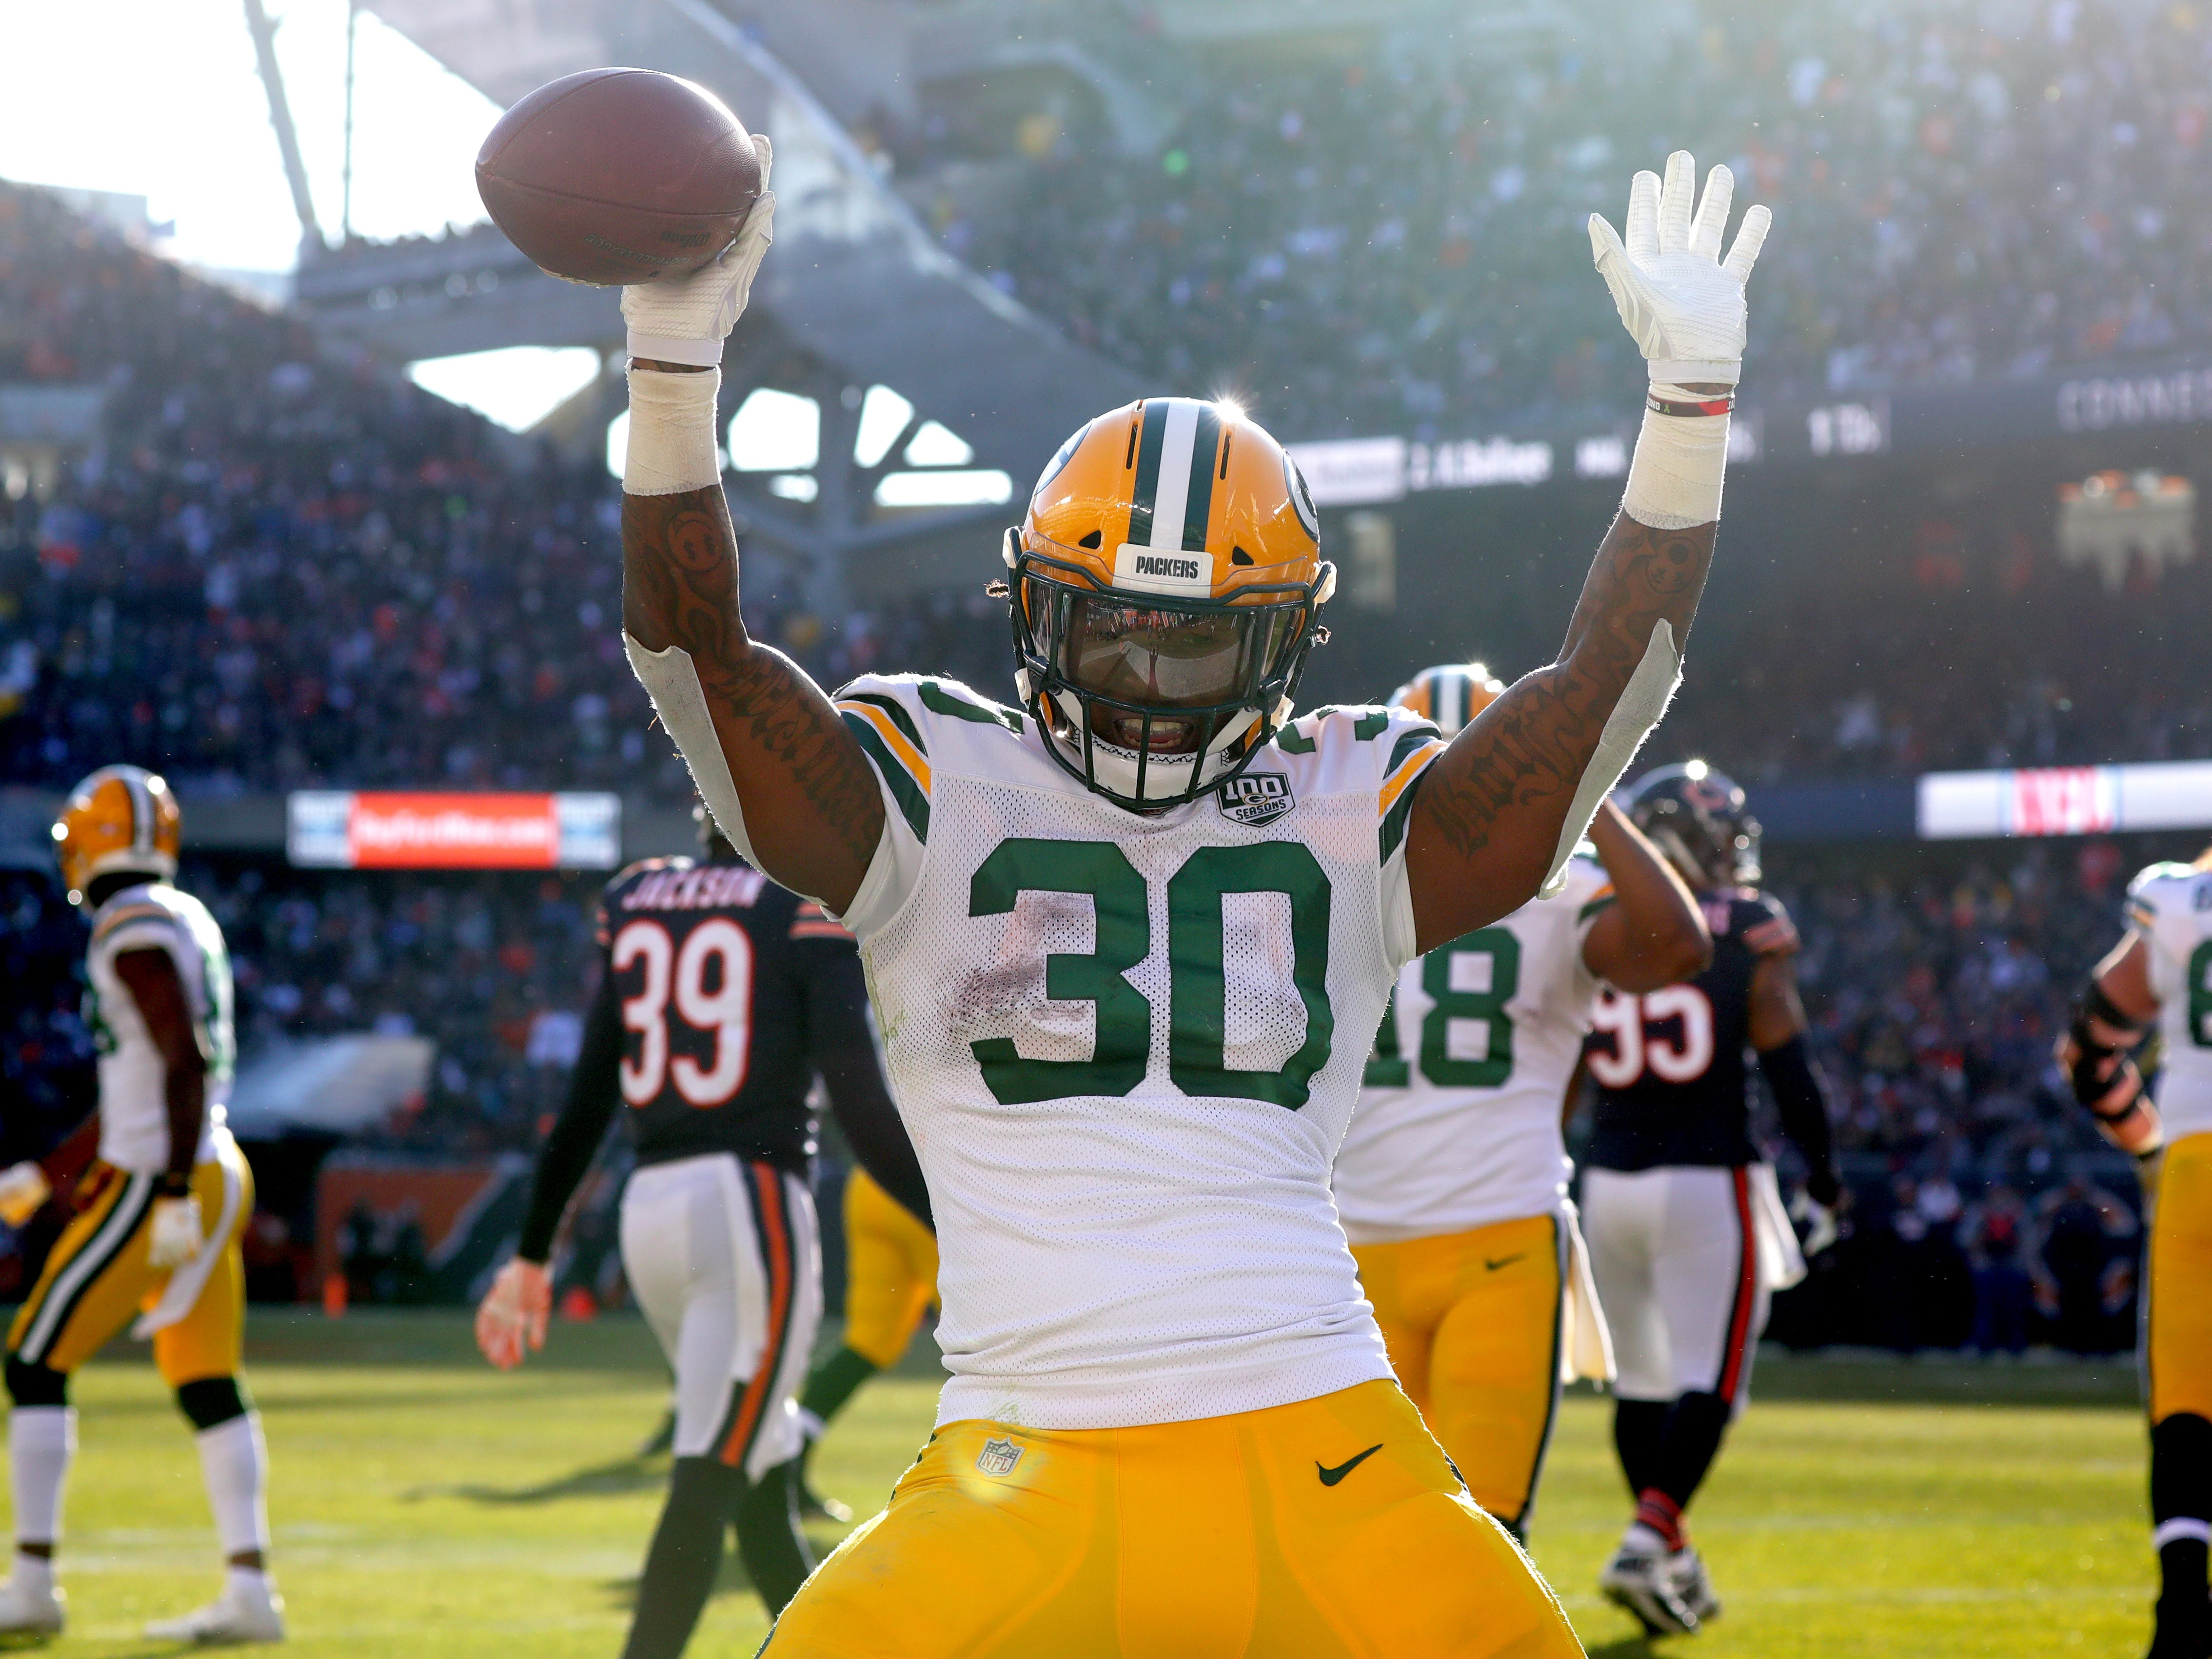 Green Bay Packers running back Jamaal Williams (30) celebrates his touchdown on a 10-yard run during the third  quarter of their game against the Chicago Bears Sunday, December 25, 2018 at Soldier Field in Chicago, Ill. The Chicago Bears beat the Green Bay Packers 24-17.  MARK HOFFMAN/MILWAUKEE JOURNAL SENTINEL